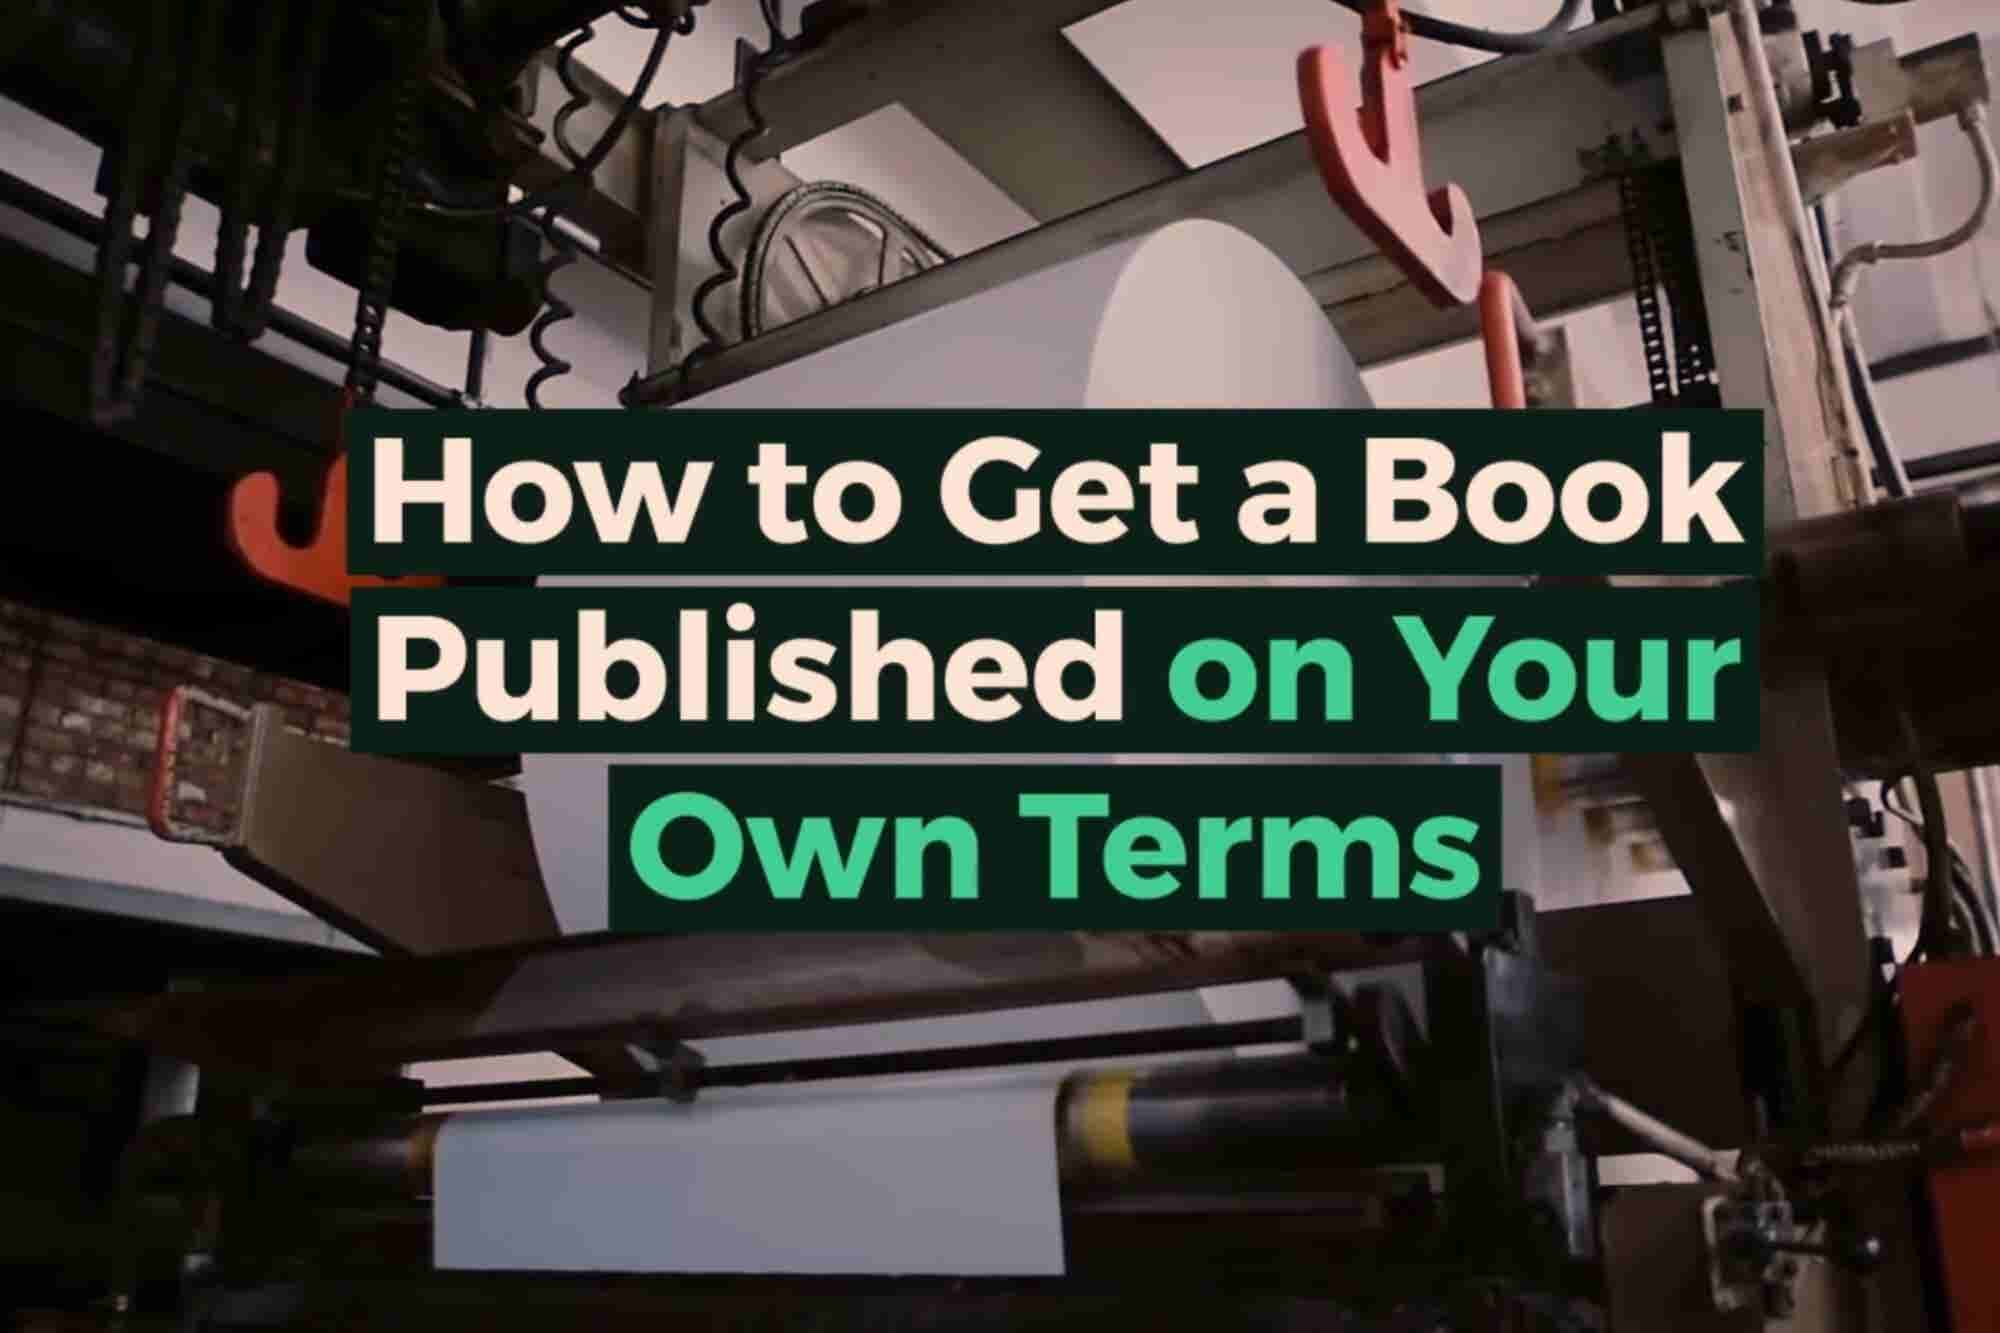 How to Get a Book Published on Your Own Terms